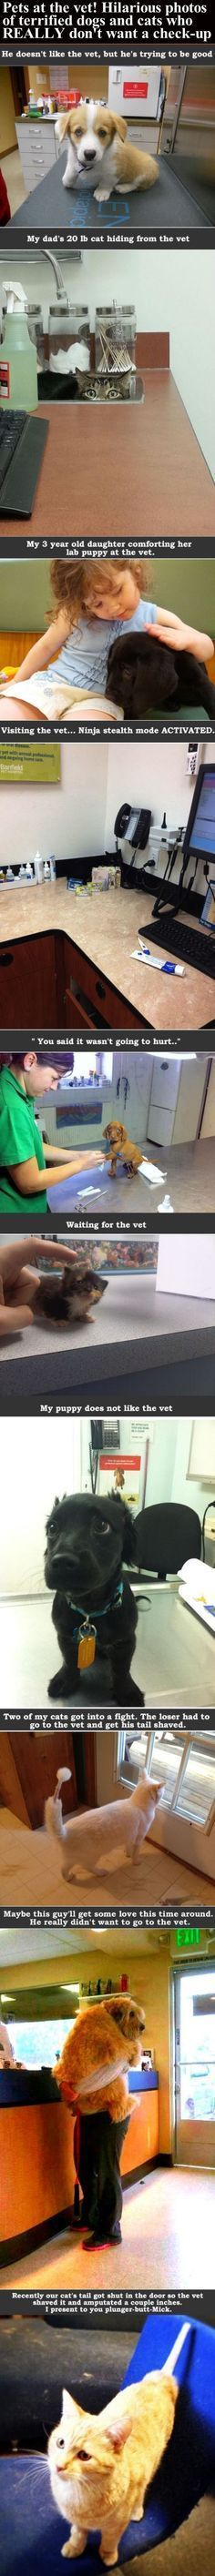 Pets At The Vet! Hilarious Photos Of Terrified Dogs And Cats Who Really Don't Want A Check-Up cute animals dogs cat cats adorable dog puppy animal pets kitten funny animals funny pets funny cats funny dogs #catsfunnylife #catsanddogsfunny